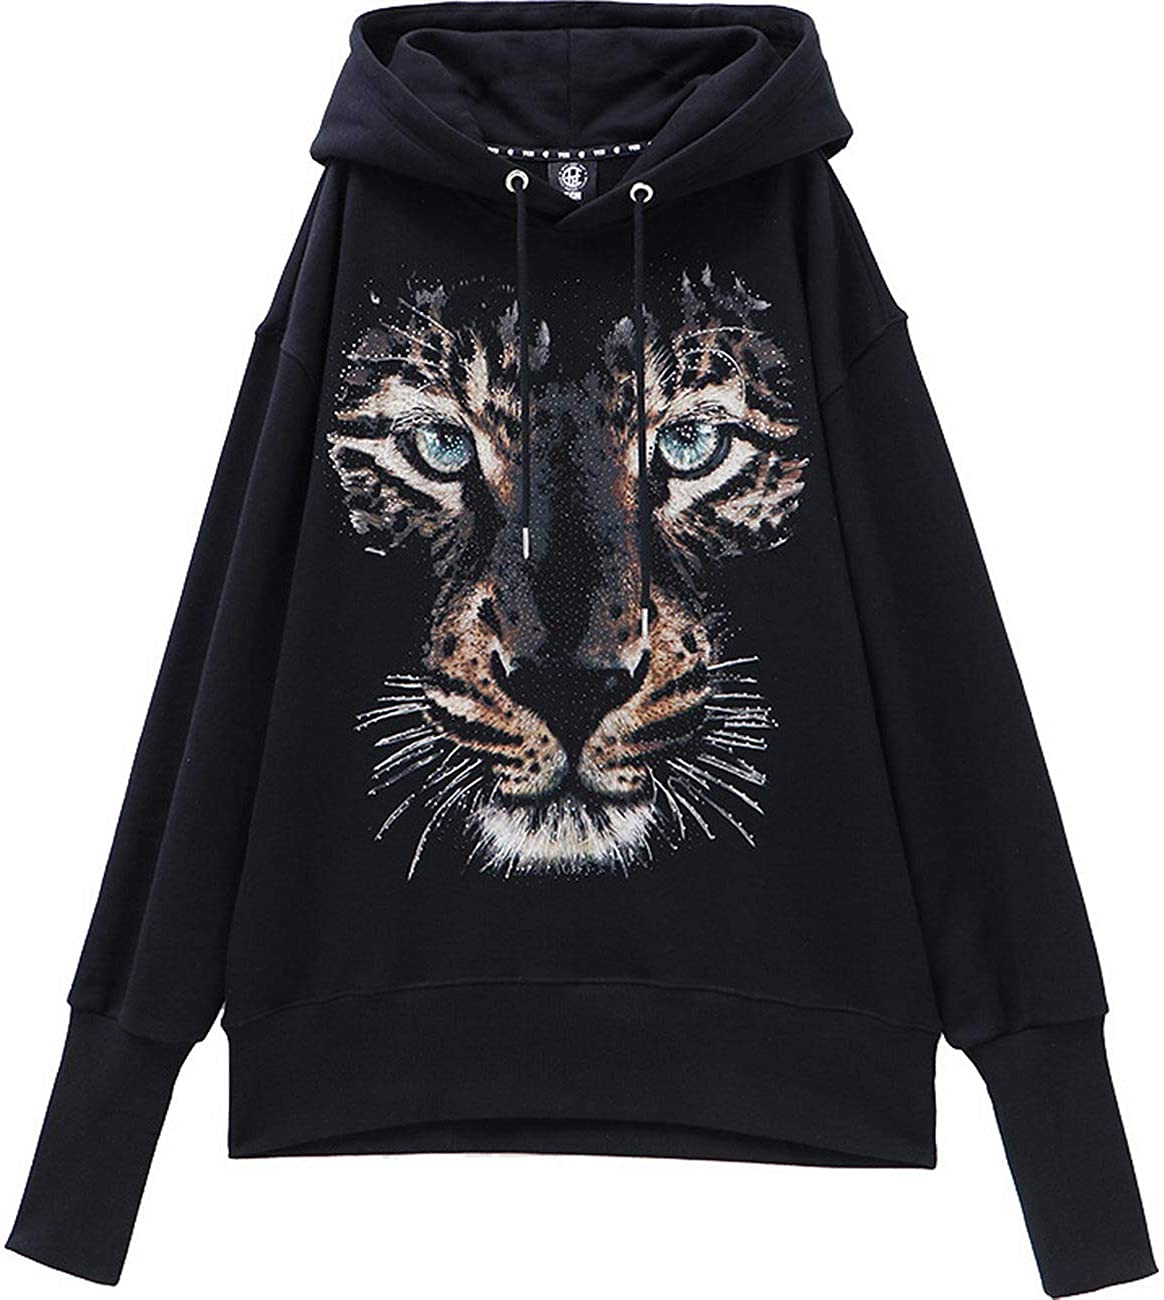 Light Luxury Tide Brand Big C hot Beads of Street Shooting Style Hooded Pullover Sweater T194126058